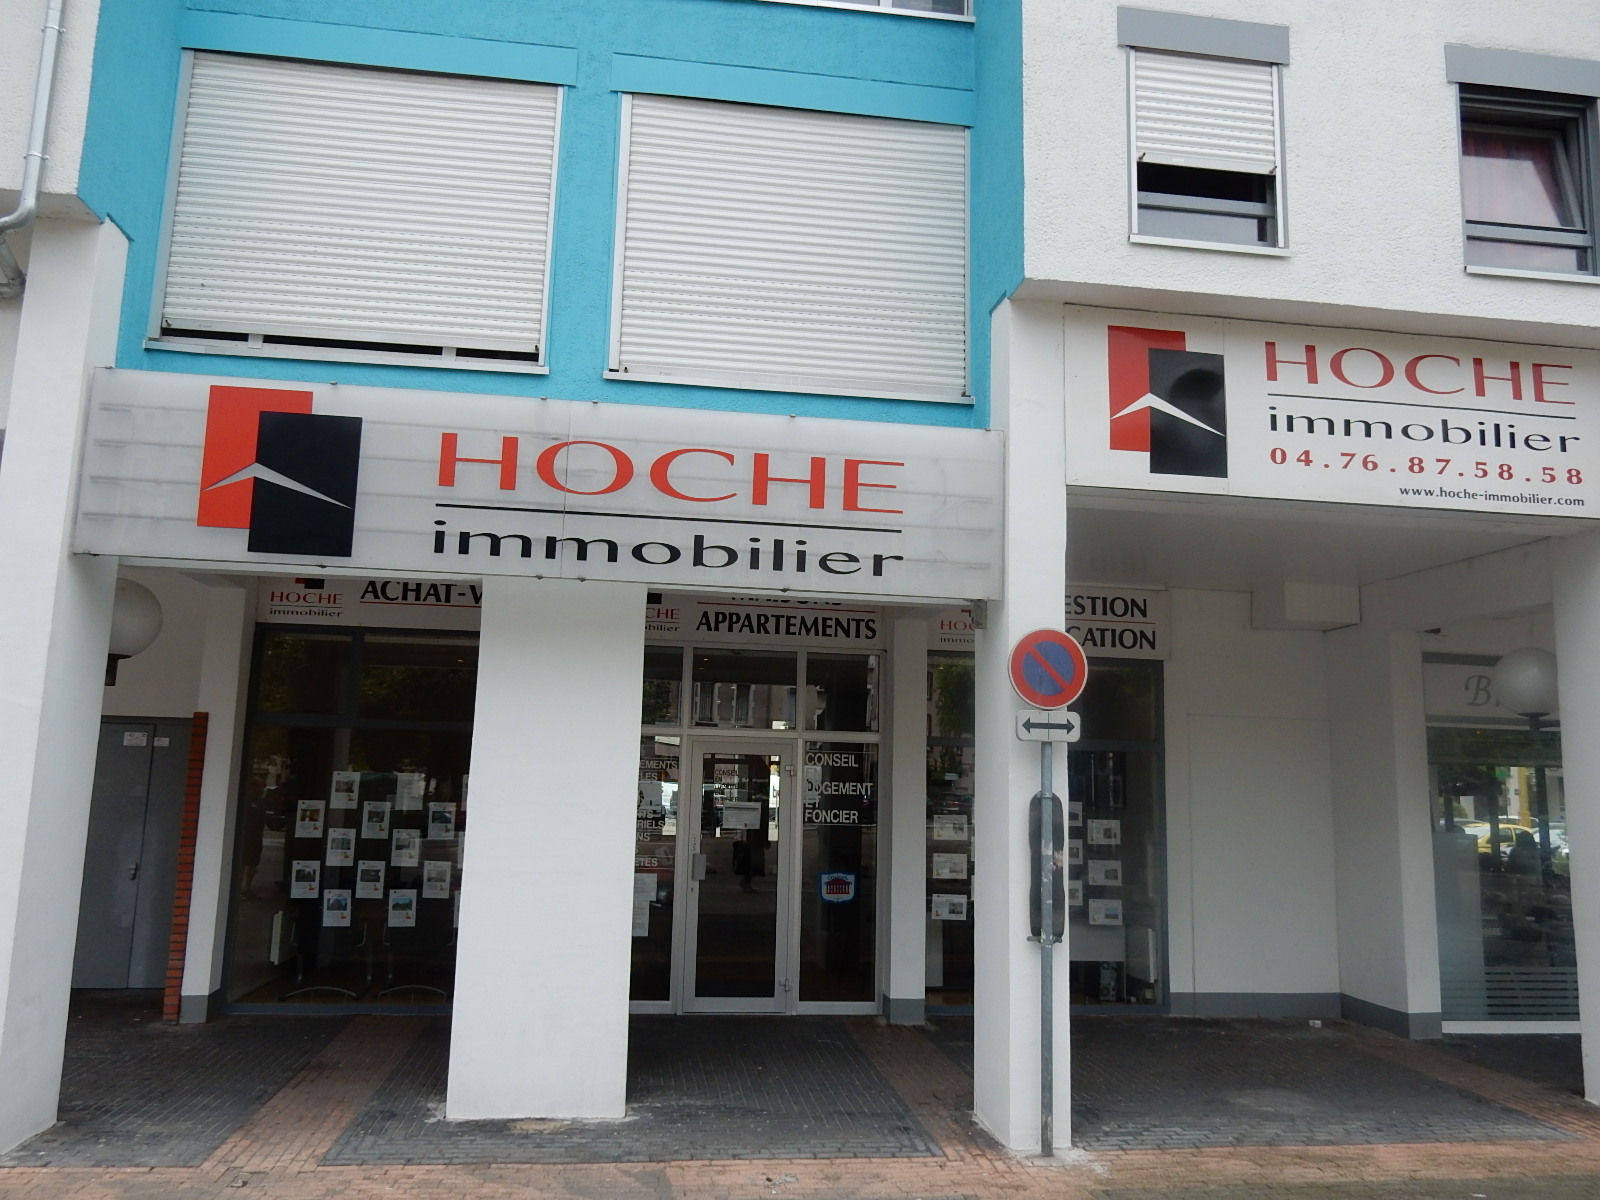 HOCHE IMMOBILIER